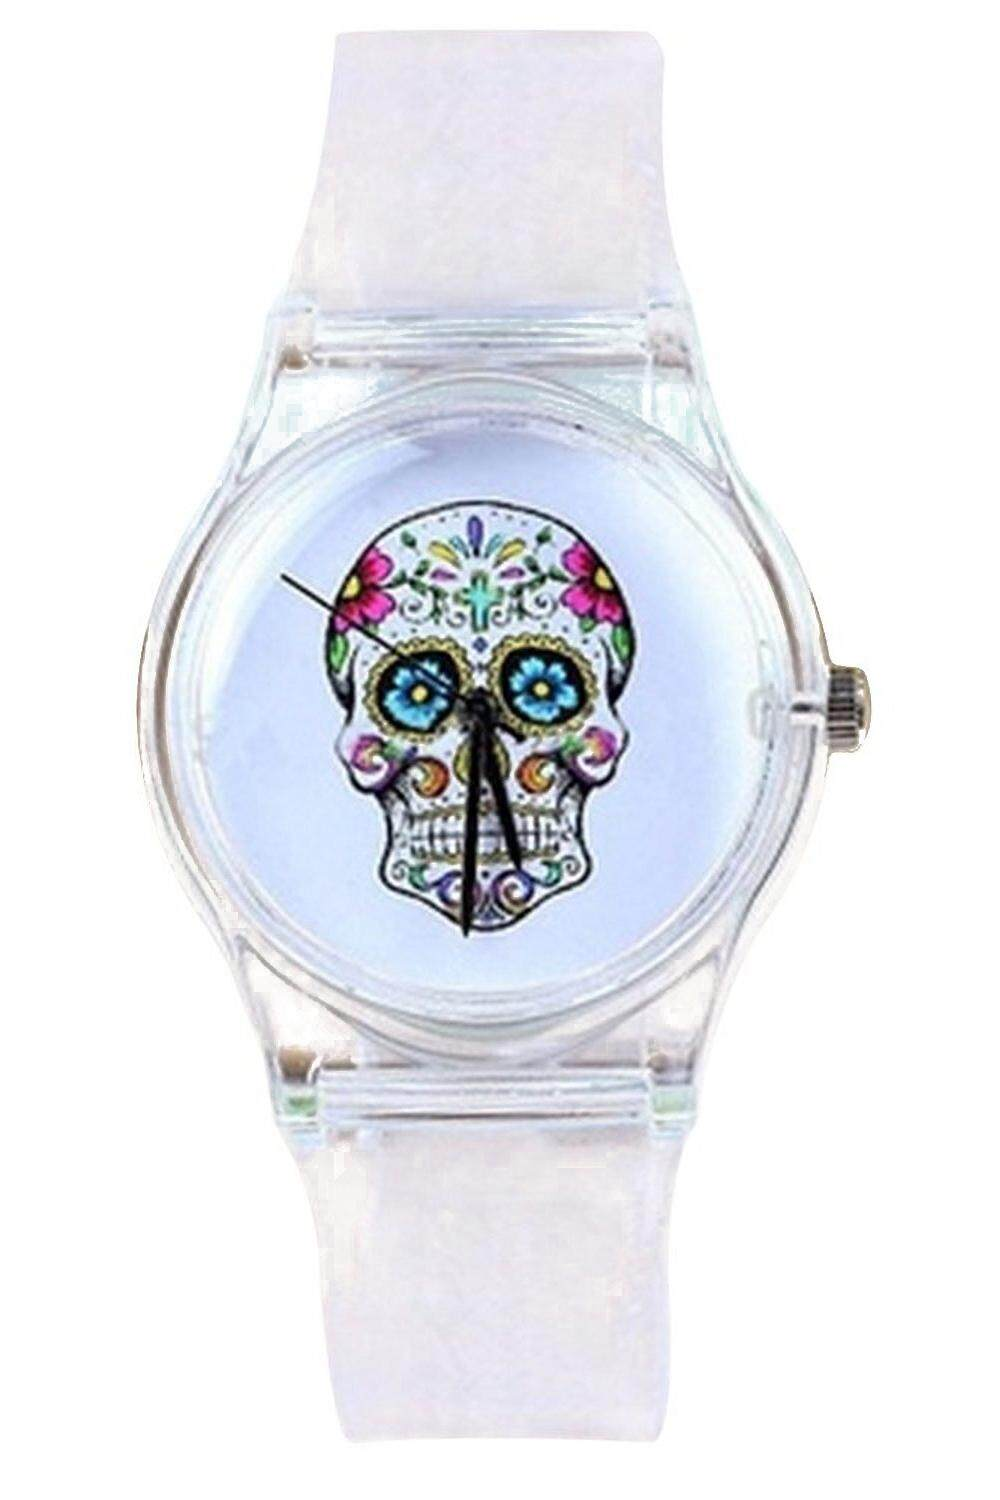 Skull Dial Transparent Silicone Wrist Watch Malaysia